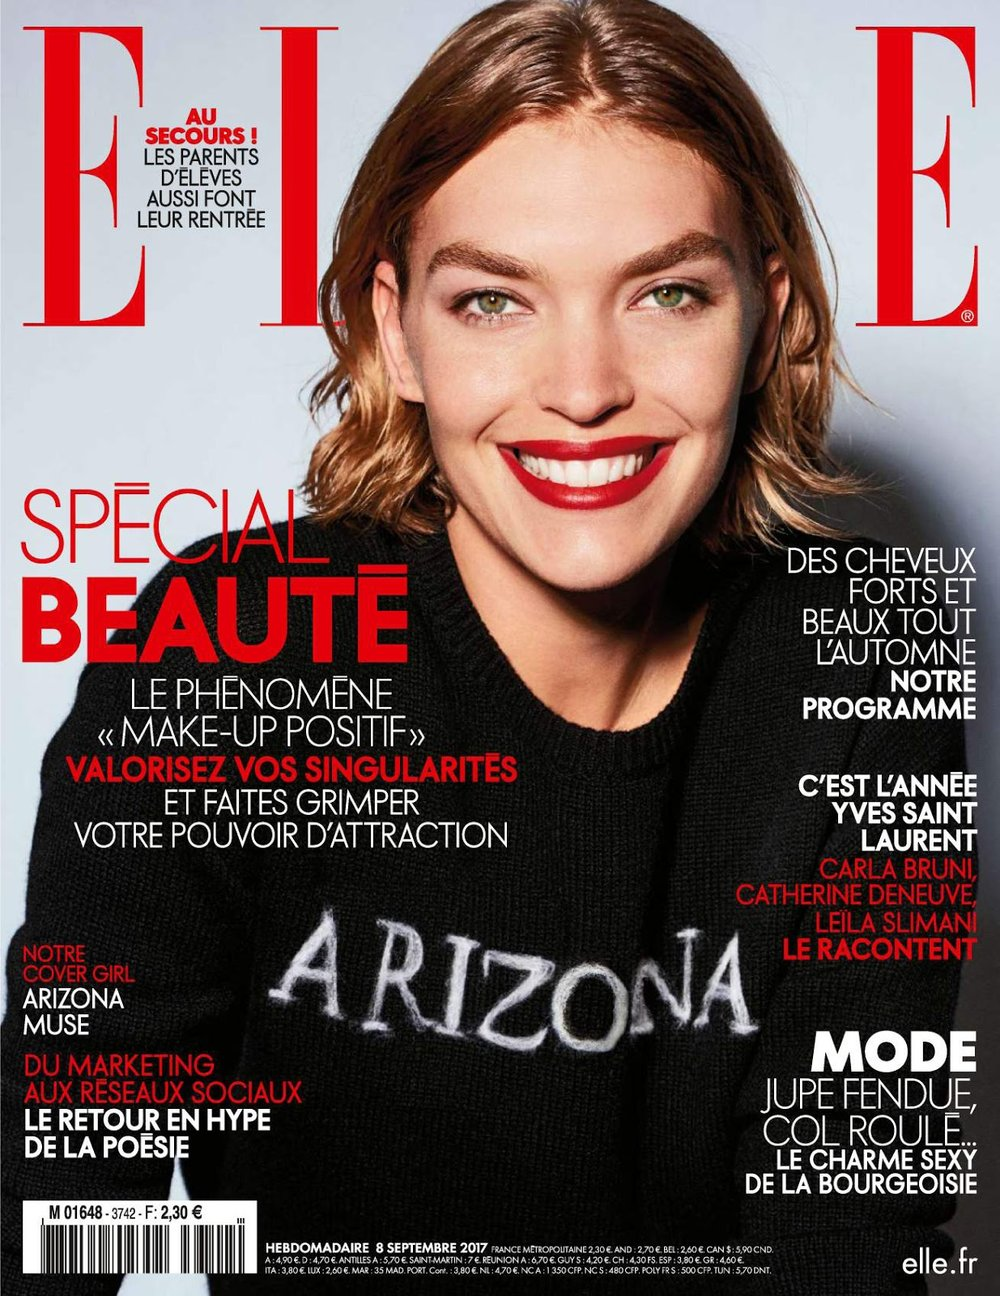 Elle France 8 Septembre 2017-Arizona Muse- (2).jpg